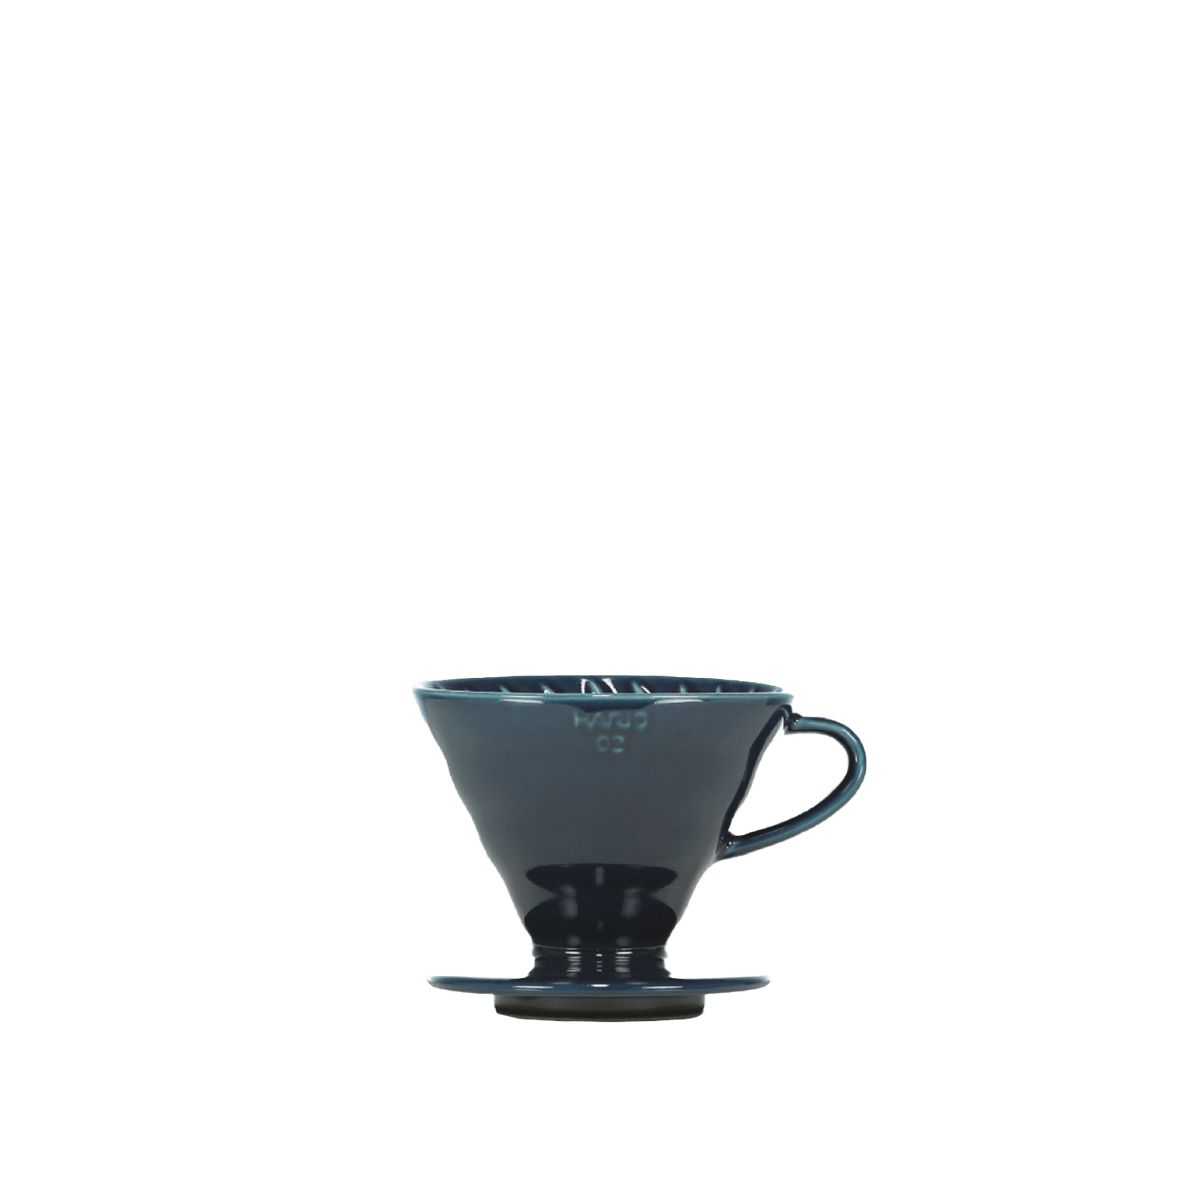 V60 Porcelain Dripper Hario [3/4 cups] - Indigo blue